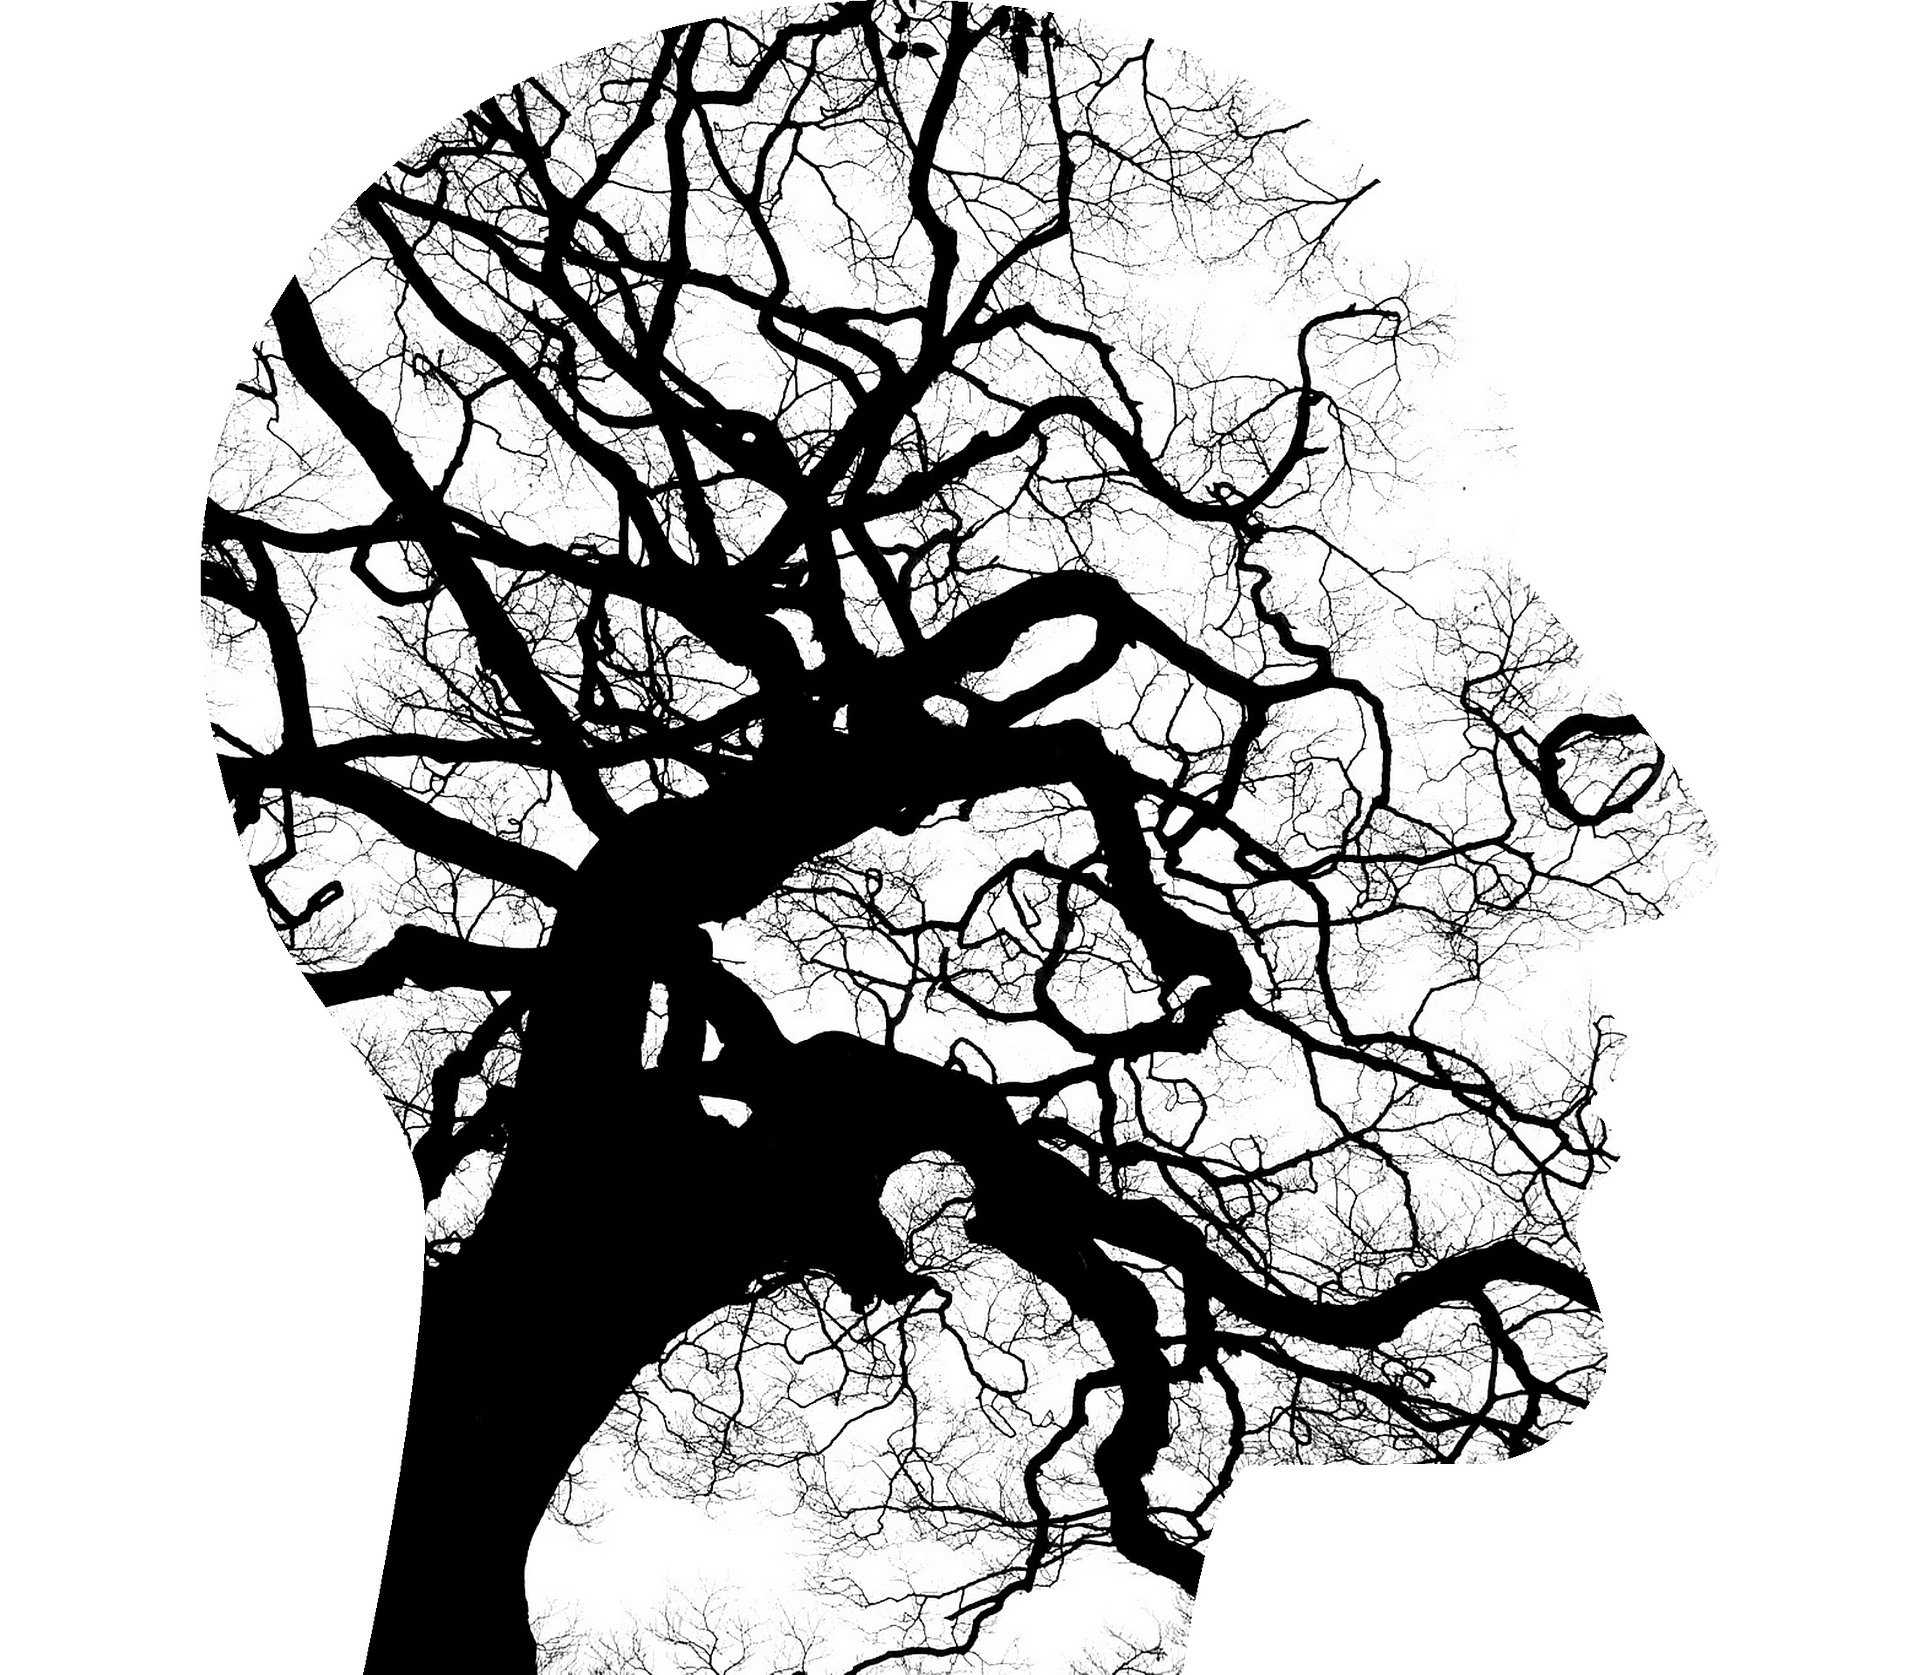 Neurons as tree branches